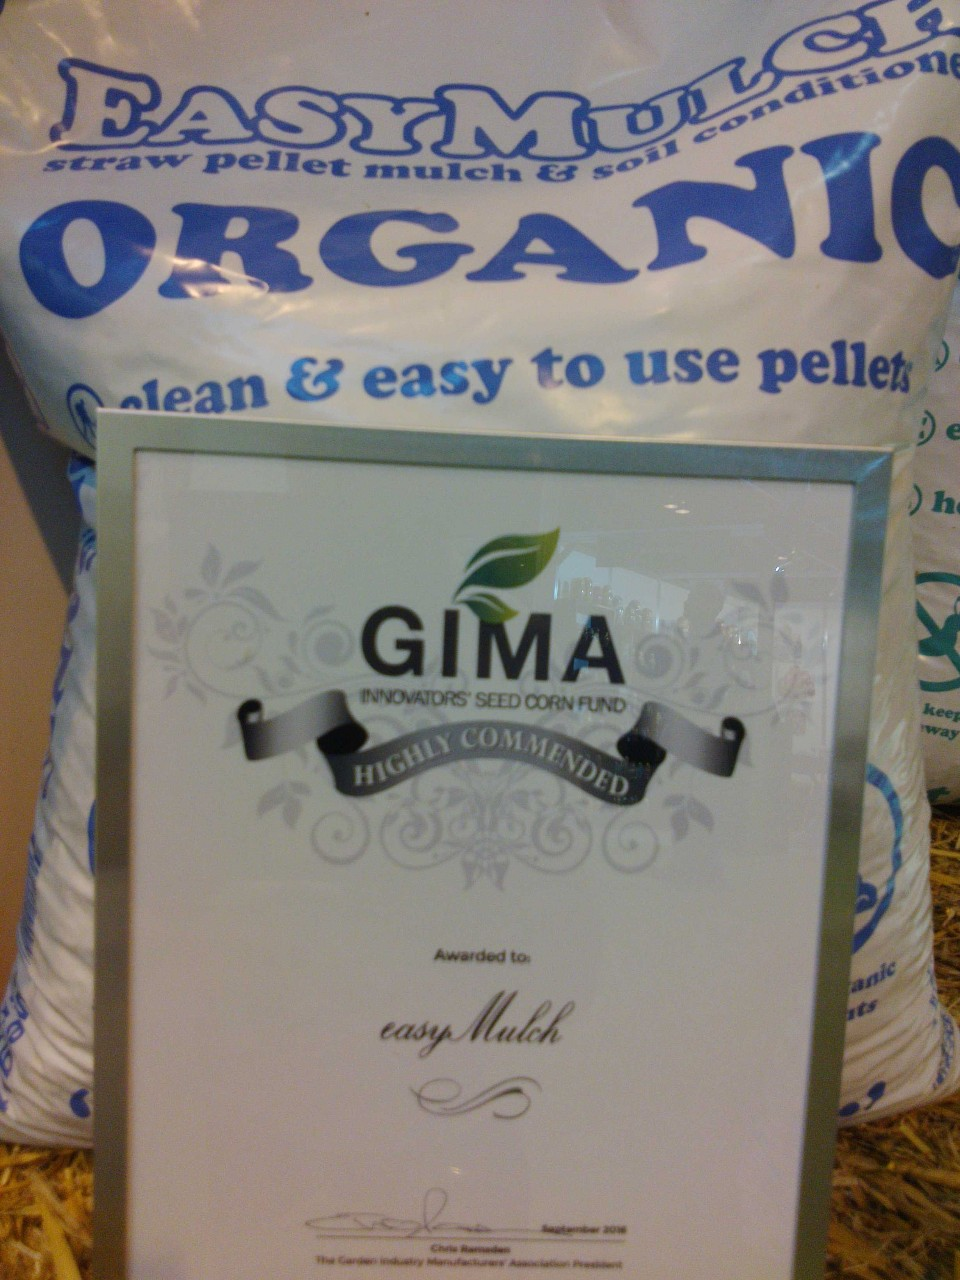 easymulch wins highly commended status at GIMA